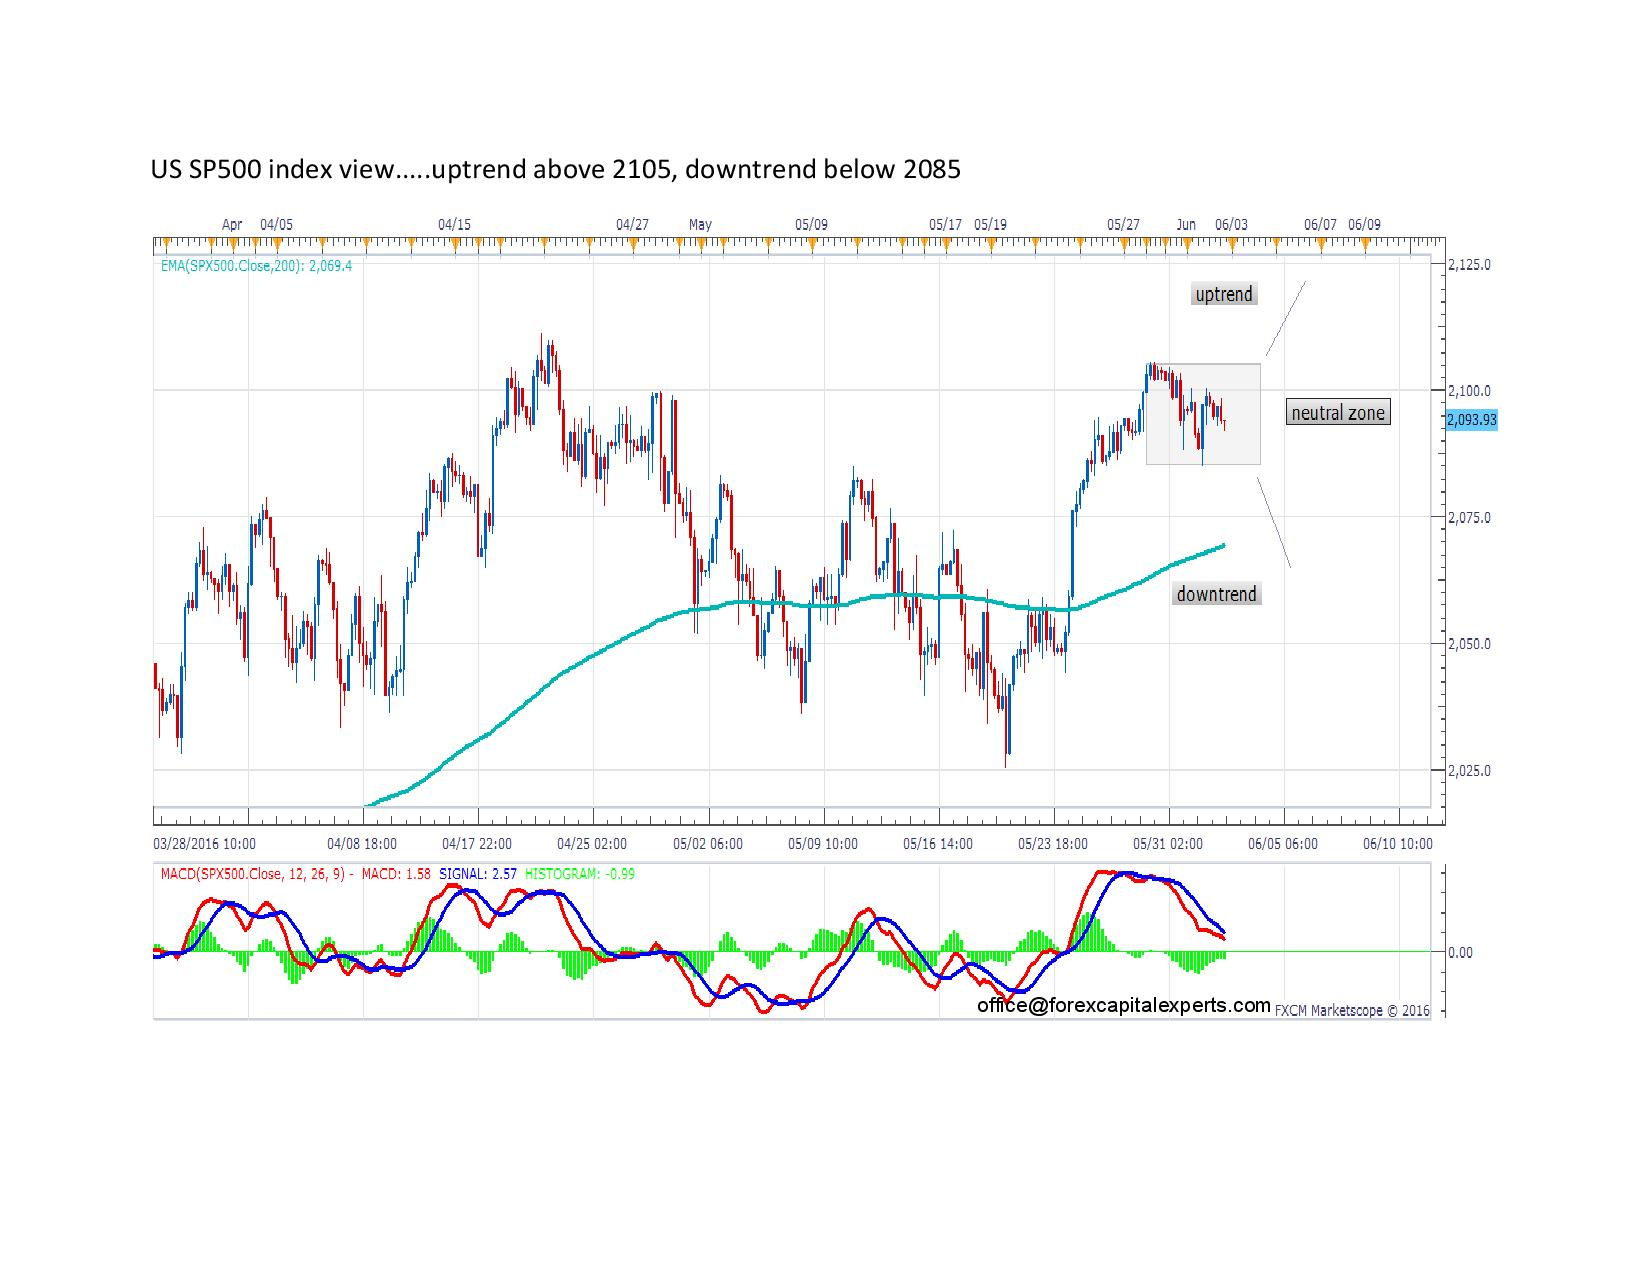 US SP500 index view page 001